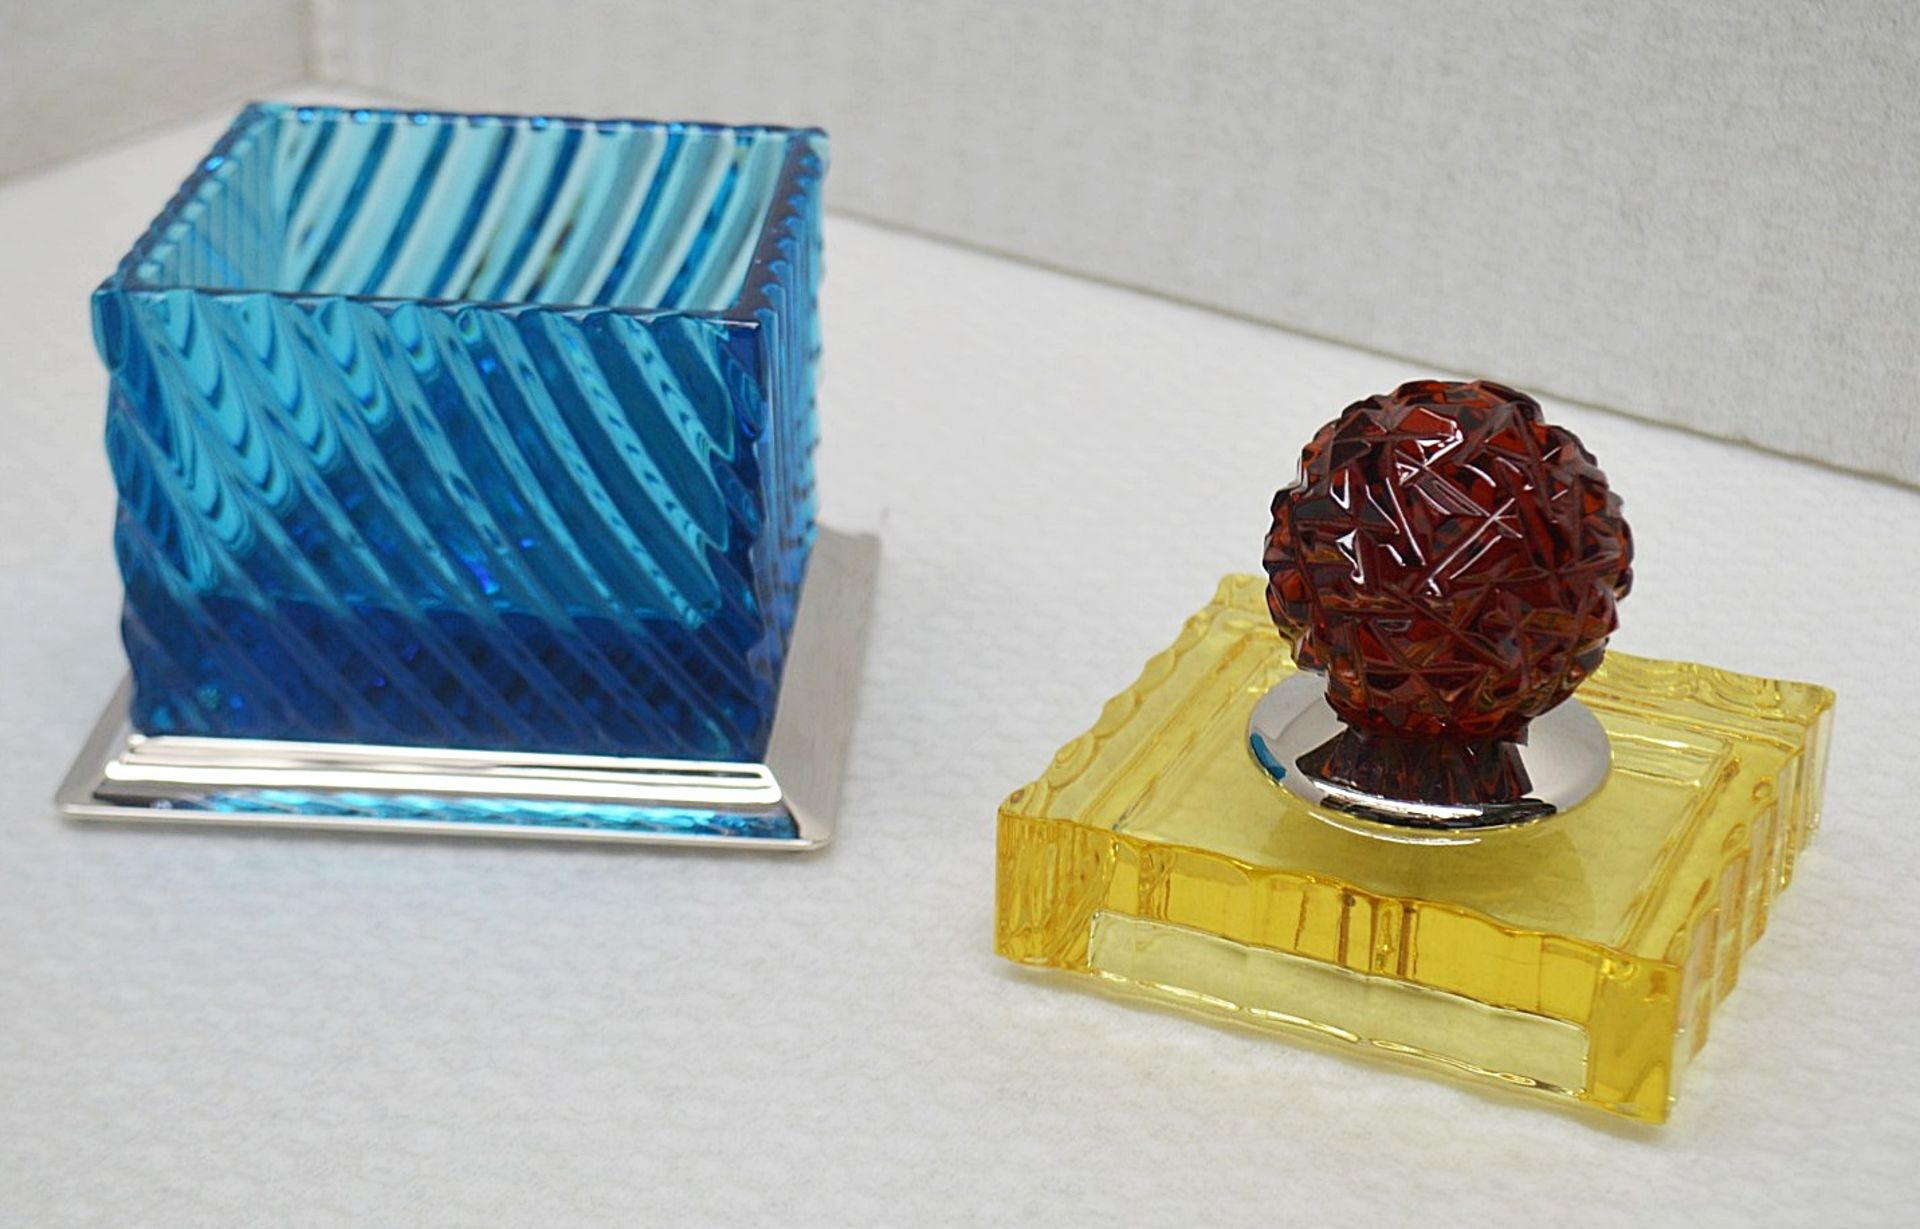 1 x BALDI 'Home Jewels' Italian Hand-crafted Artisan Crystal Box In Blue & Yellow, With A - Image 5 of 5